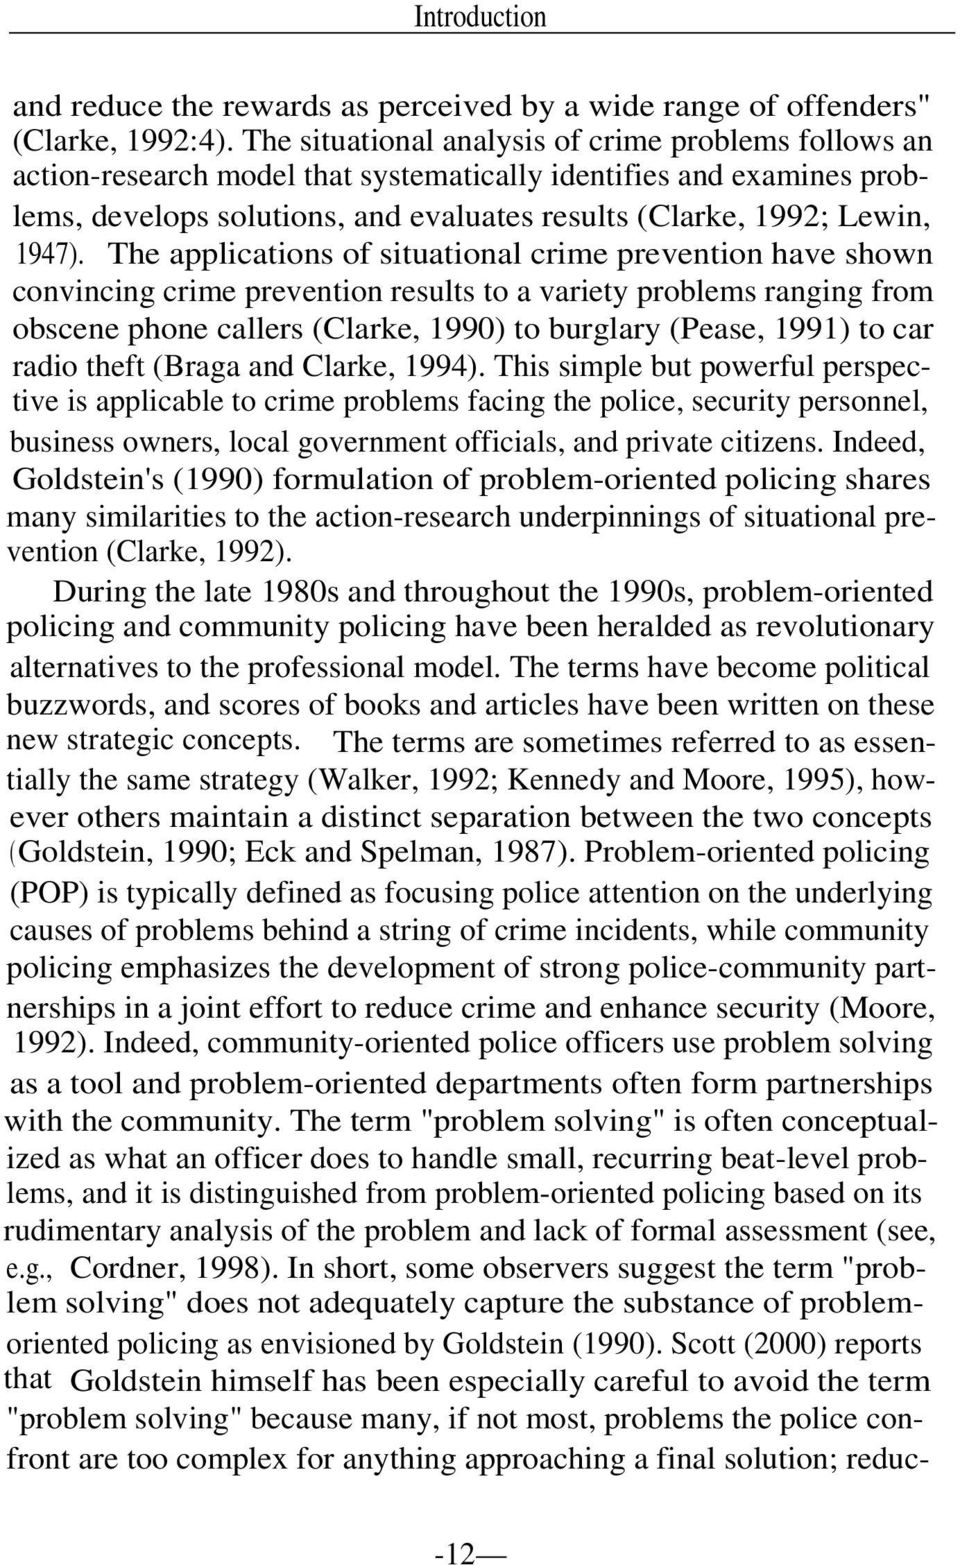 The applications of situational crime prevention have shown convincing crime prevention results to a variety problems ranging from obscene phone callers (Clarke, 1990) to burglary (Pease, 1991) to